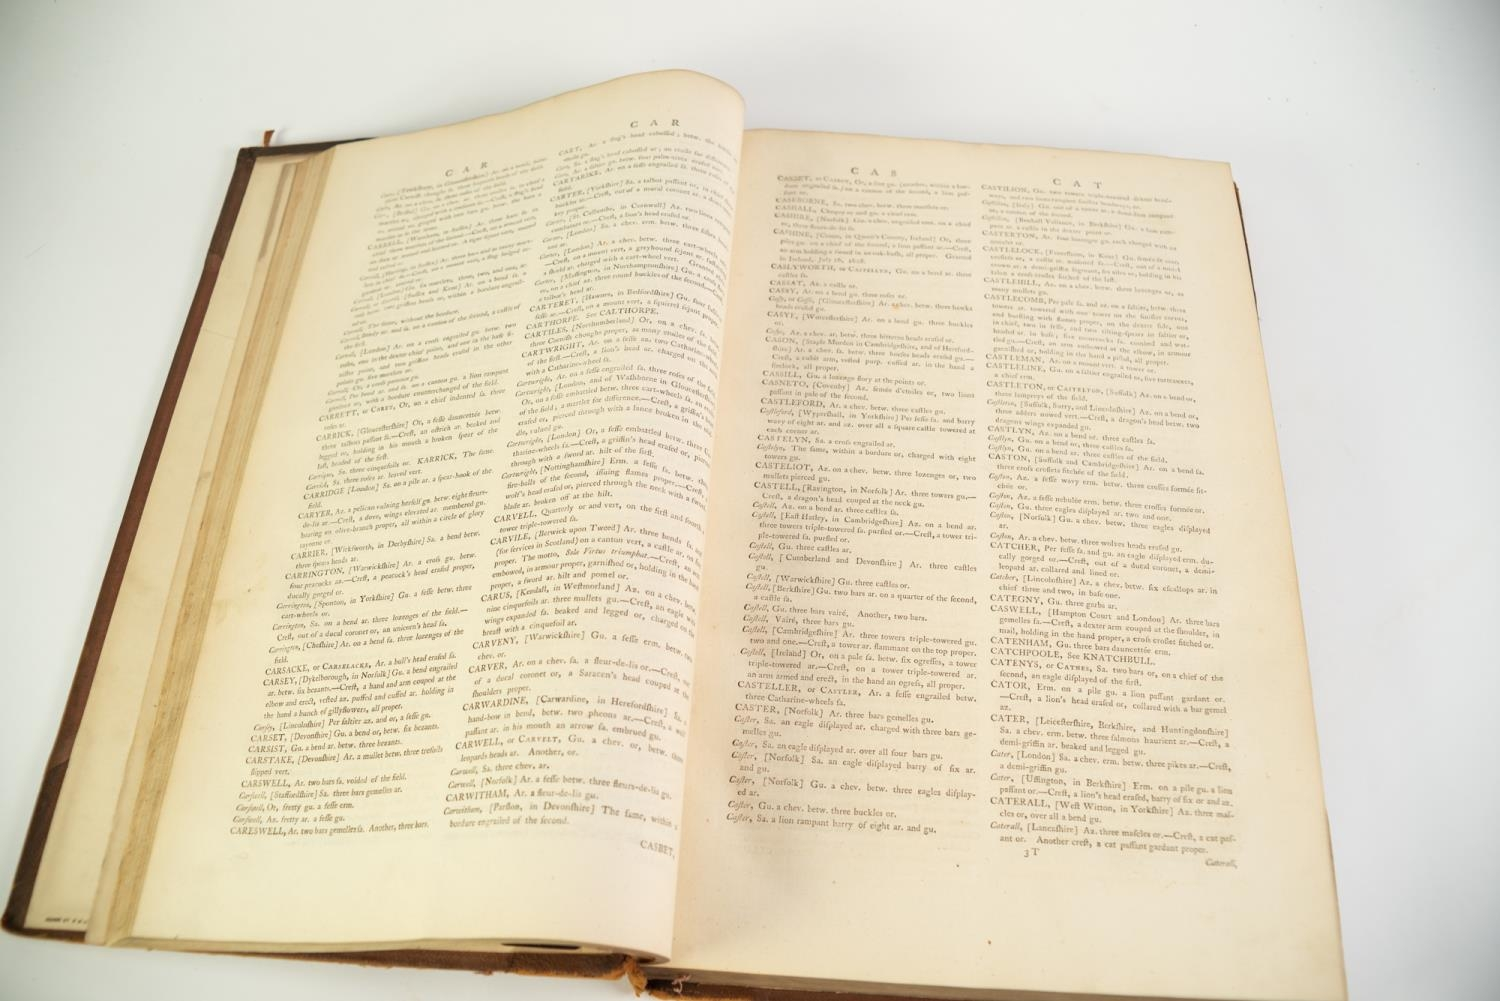 Joseph Edmondson- A Complete Body of Heraldry, 2 vol, folio, London, printed for the Author by T - Image 4 of 7